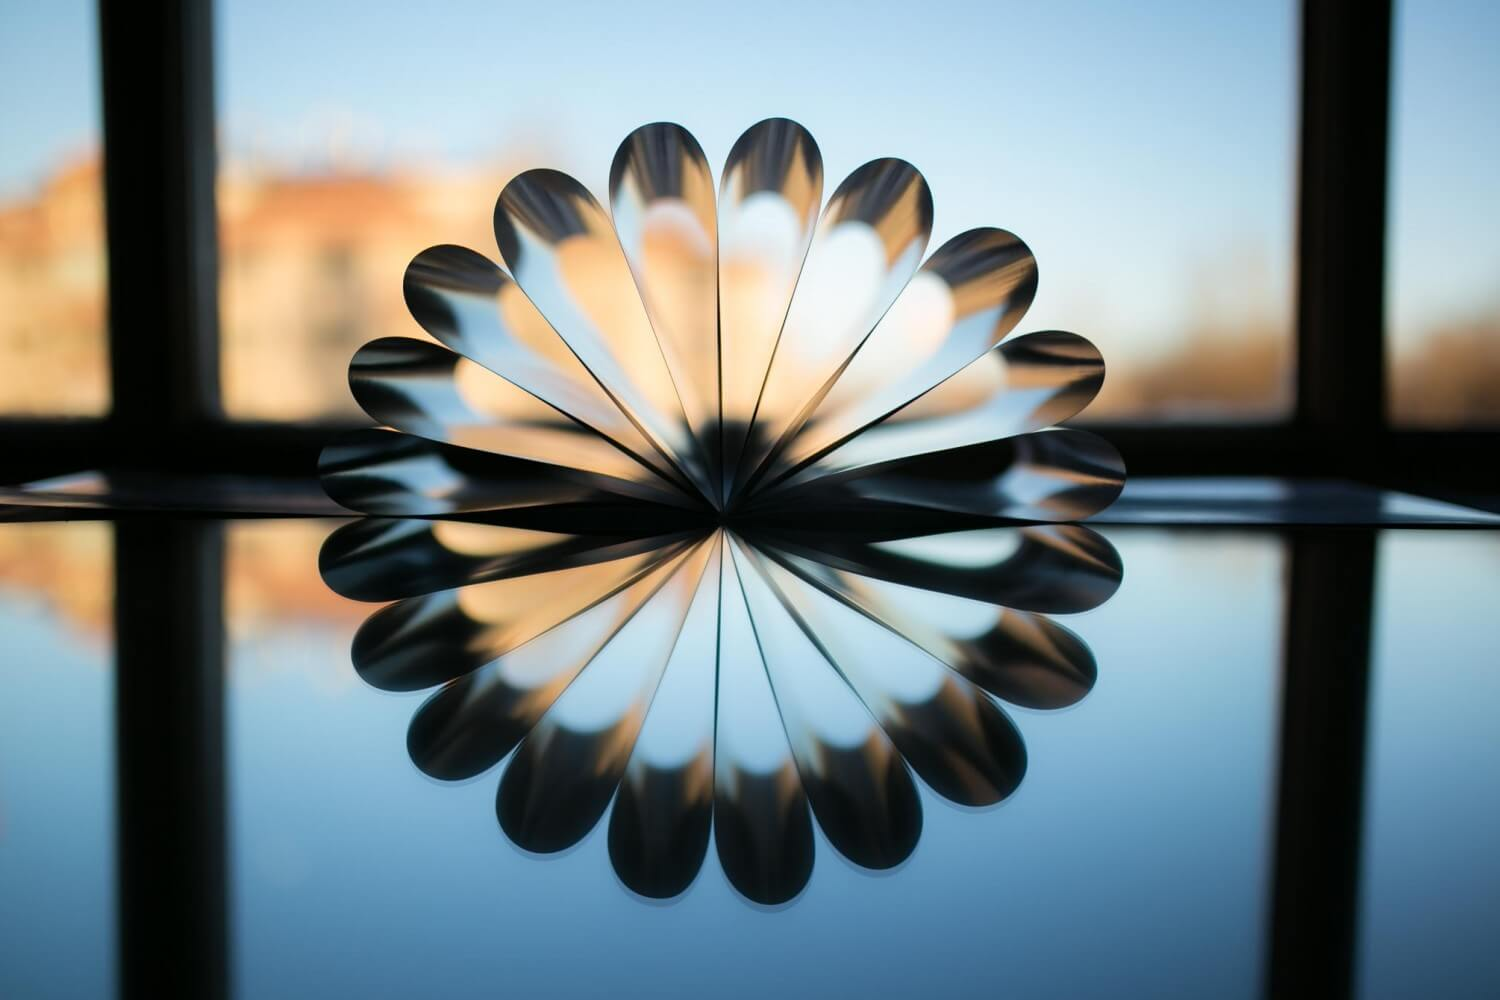 30 Amazing Still Life Photography Ideas You Must See ...